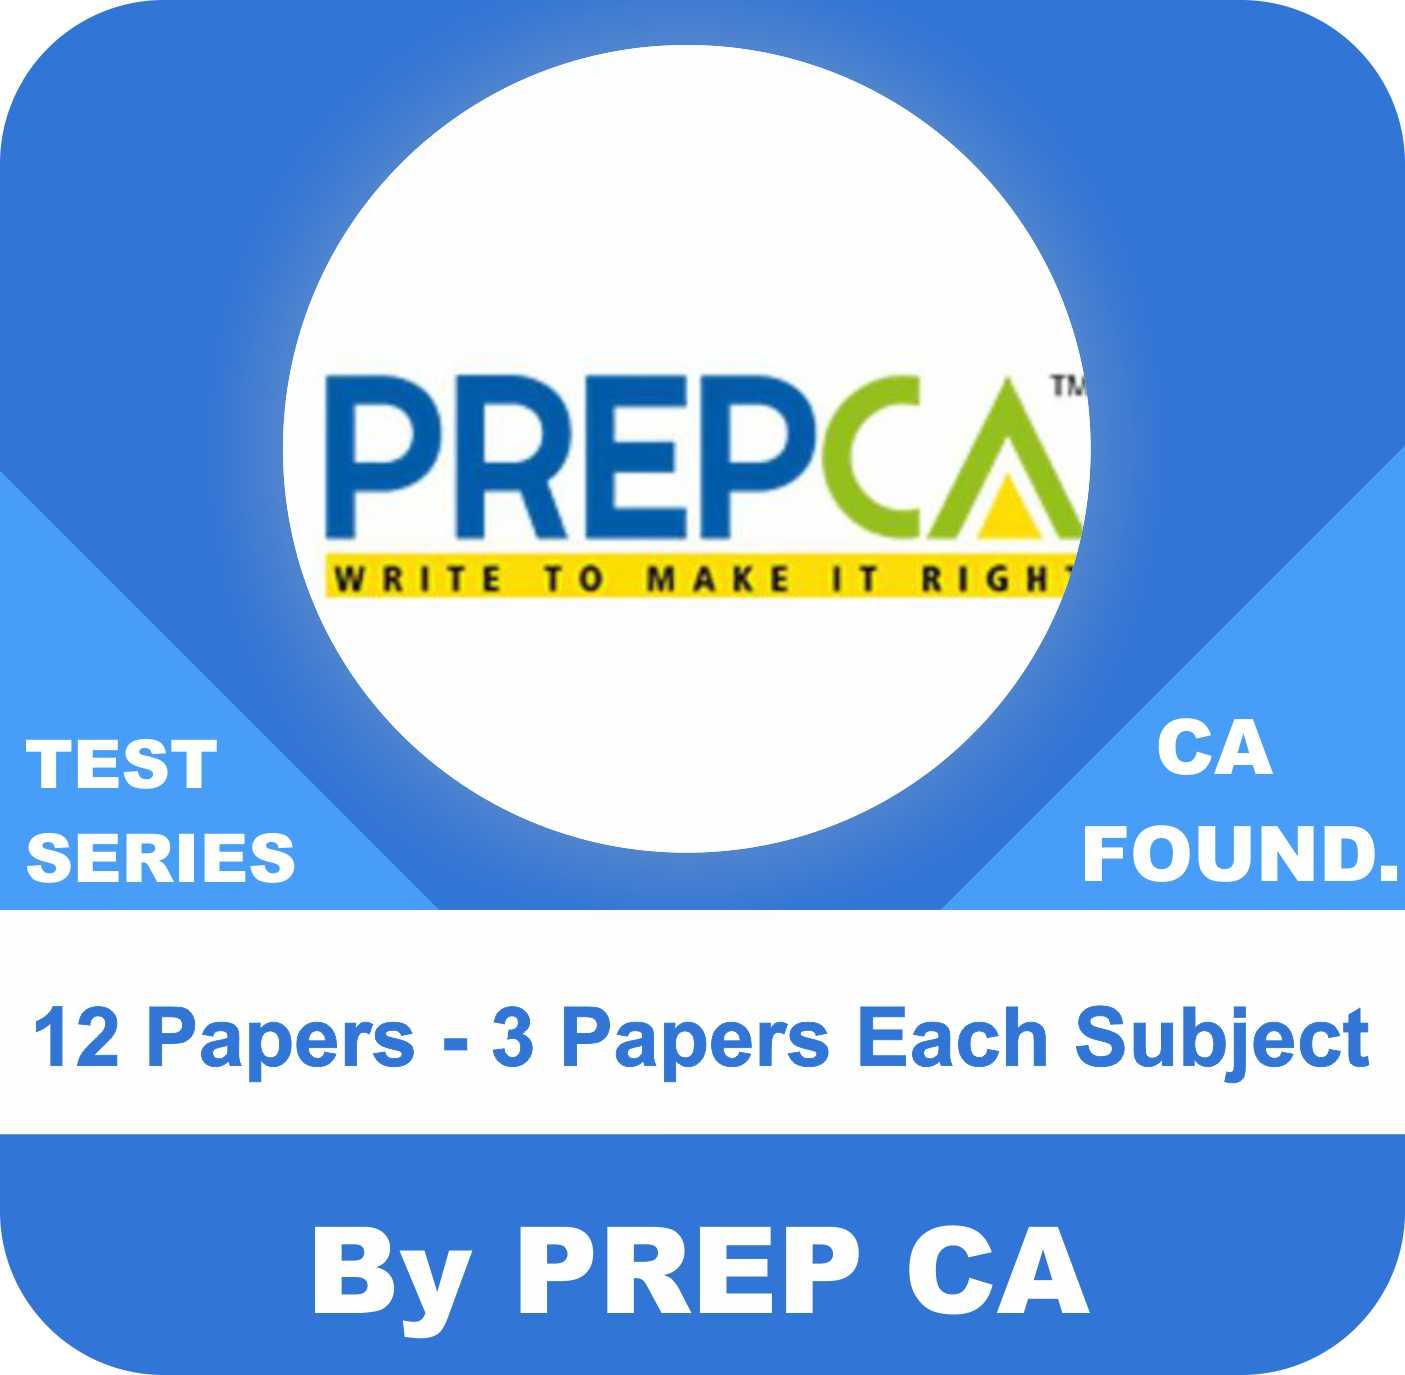 (12 Papers - 3 Papers Each Subject) (4 Subject) All Subjects Test Series in Standard Program